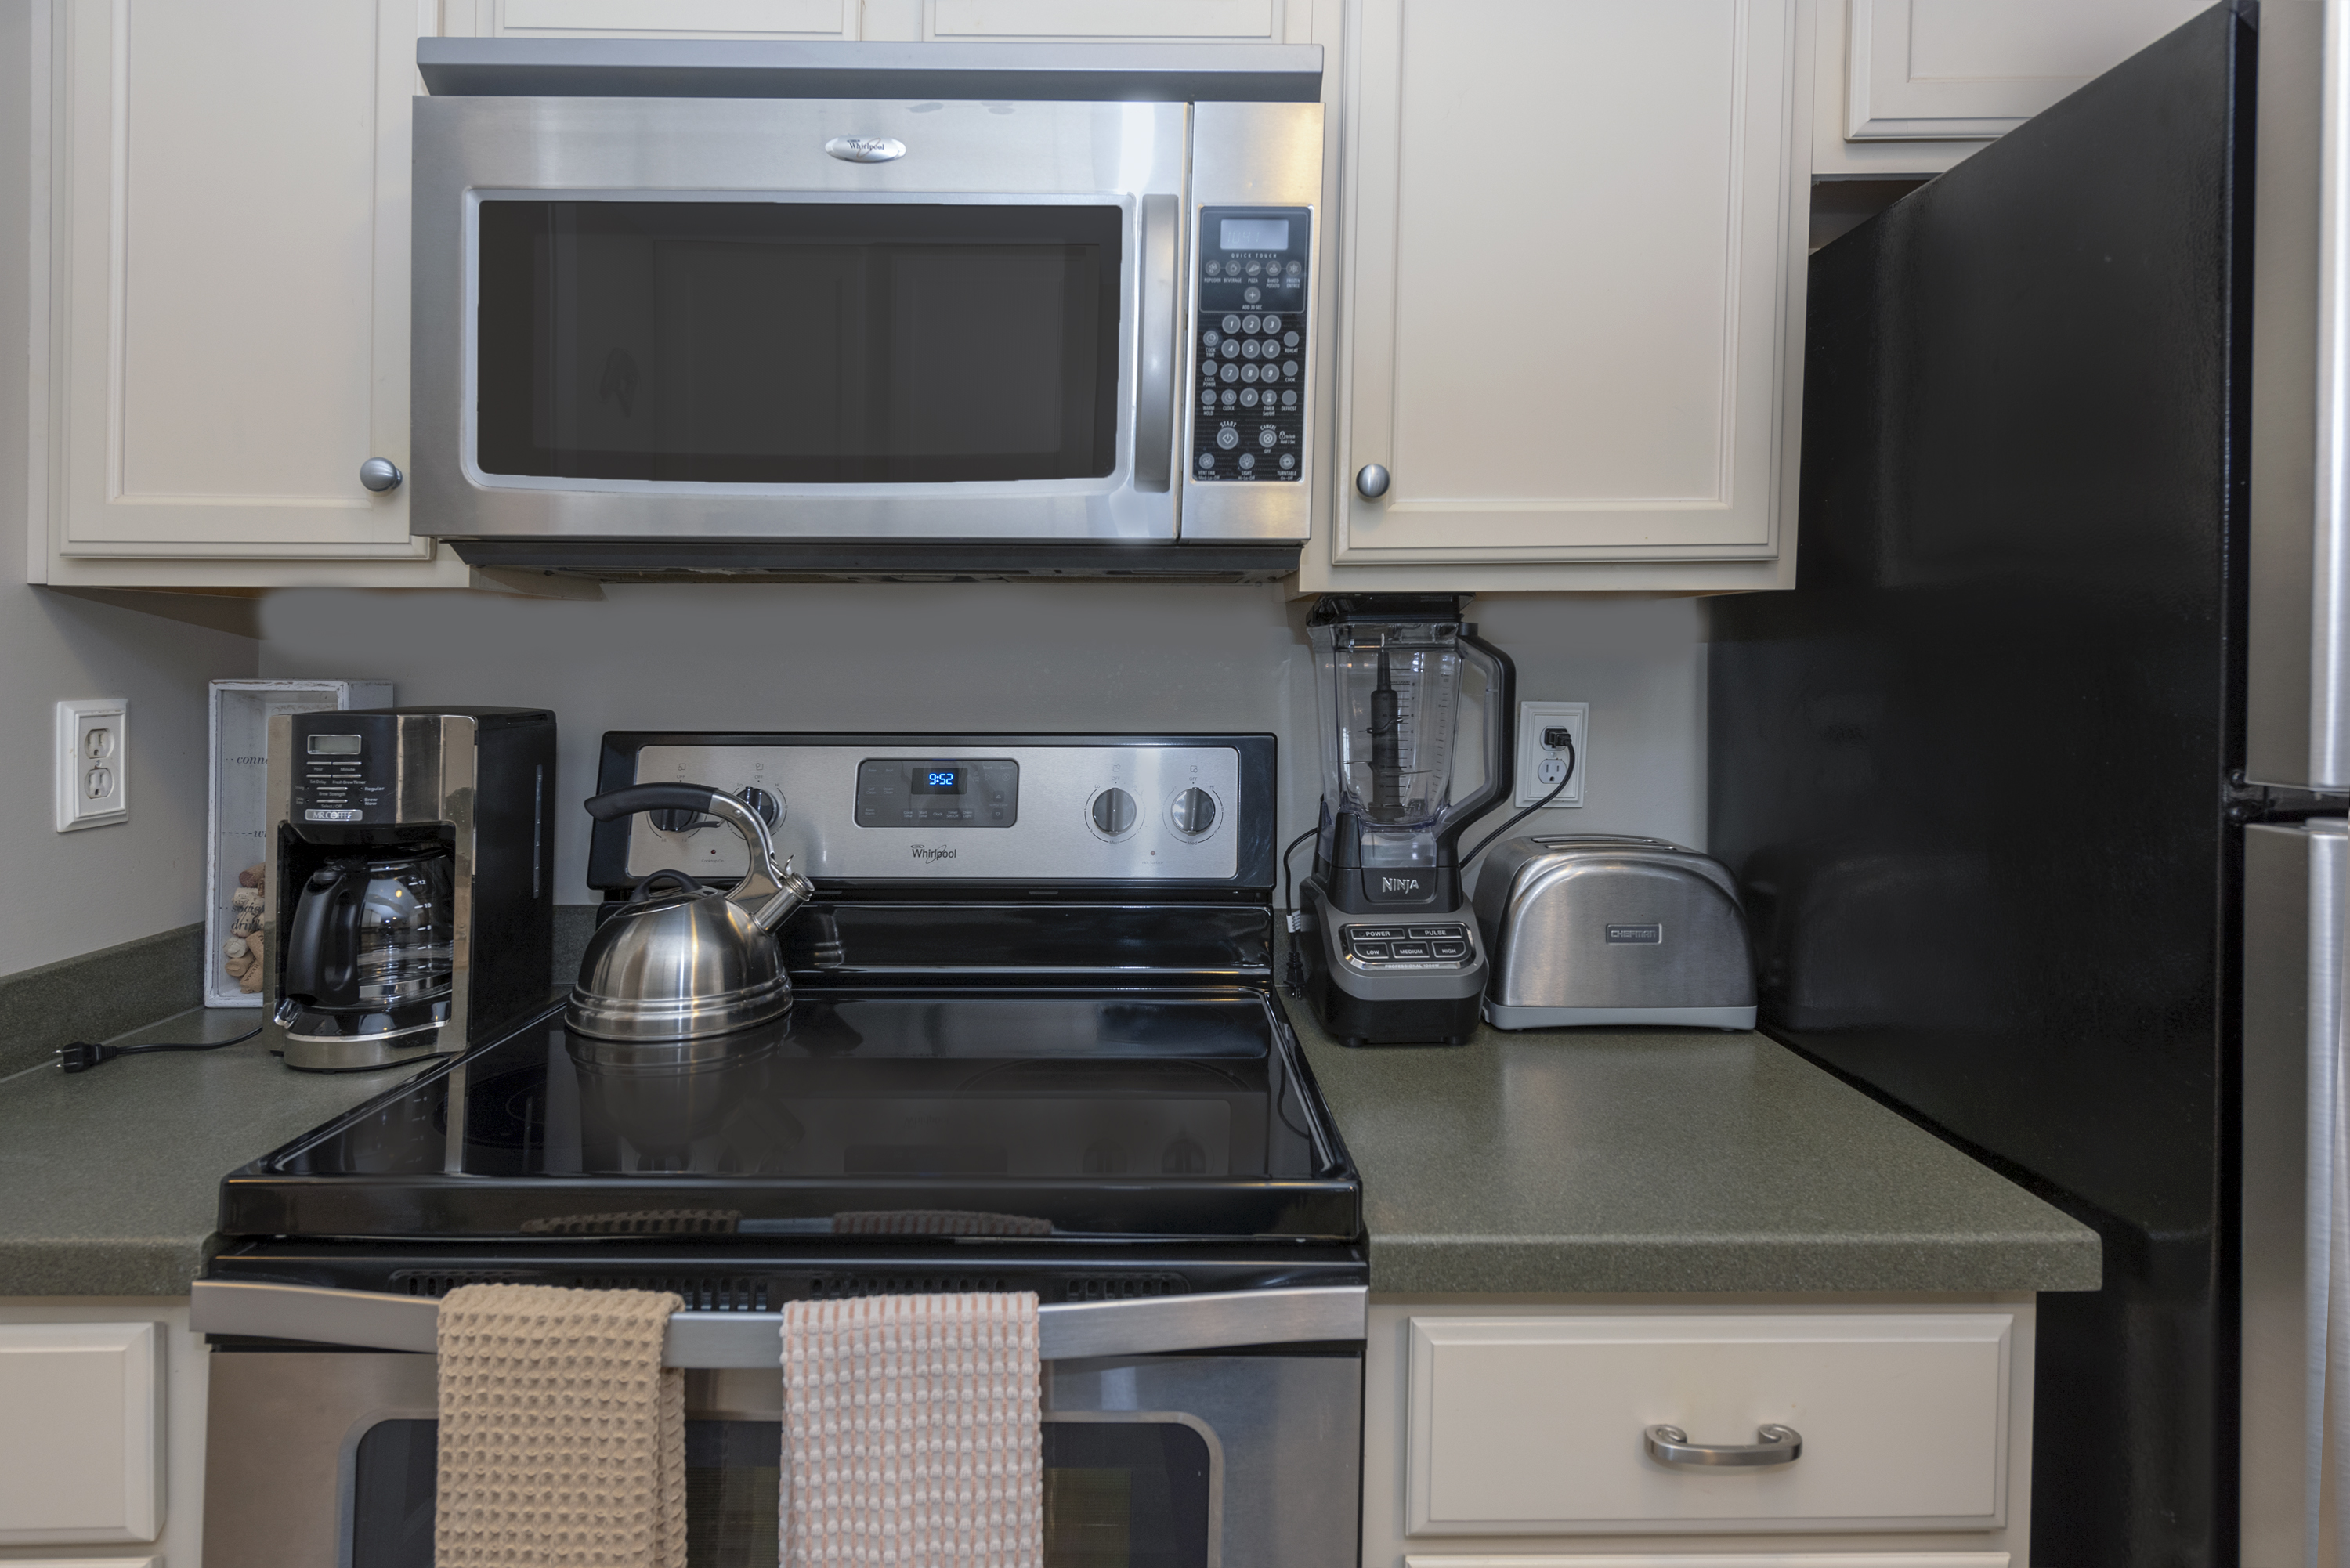 The fully equipped kitchen has granite countertops and white cabinetry.